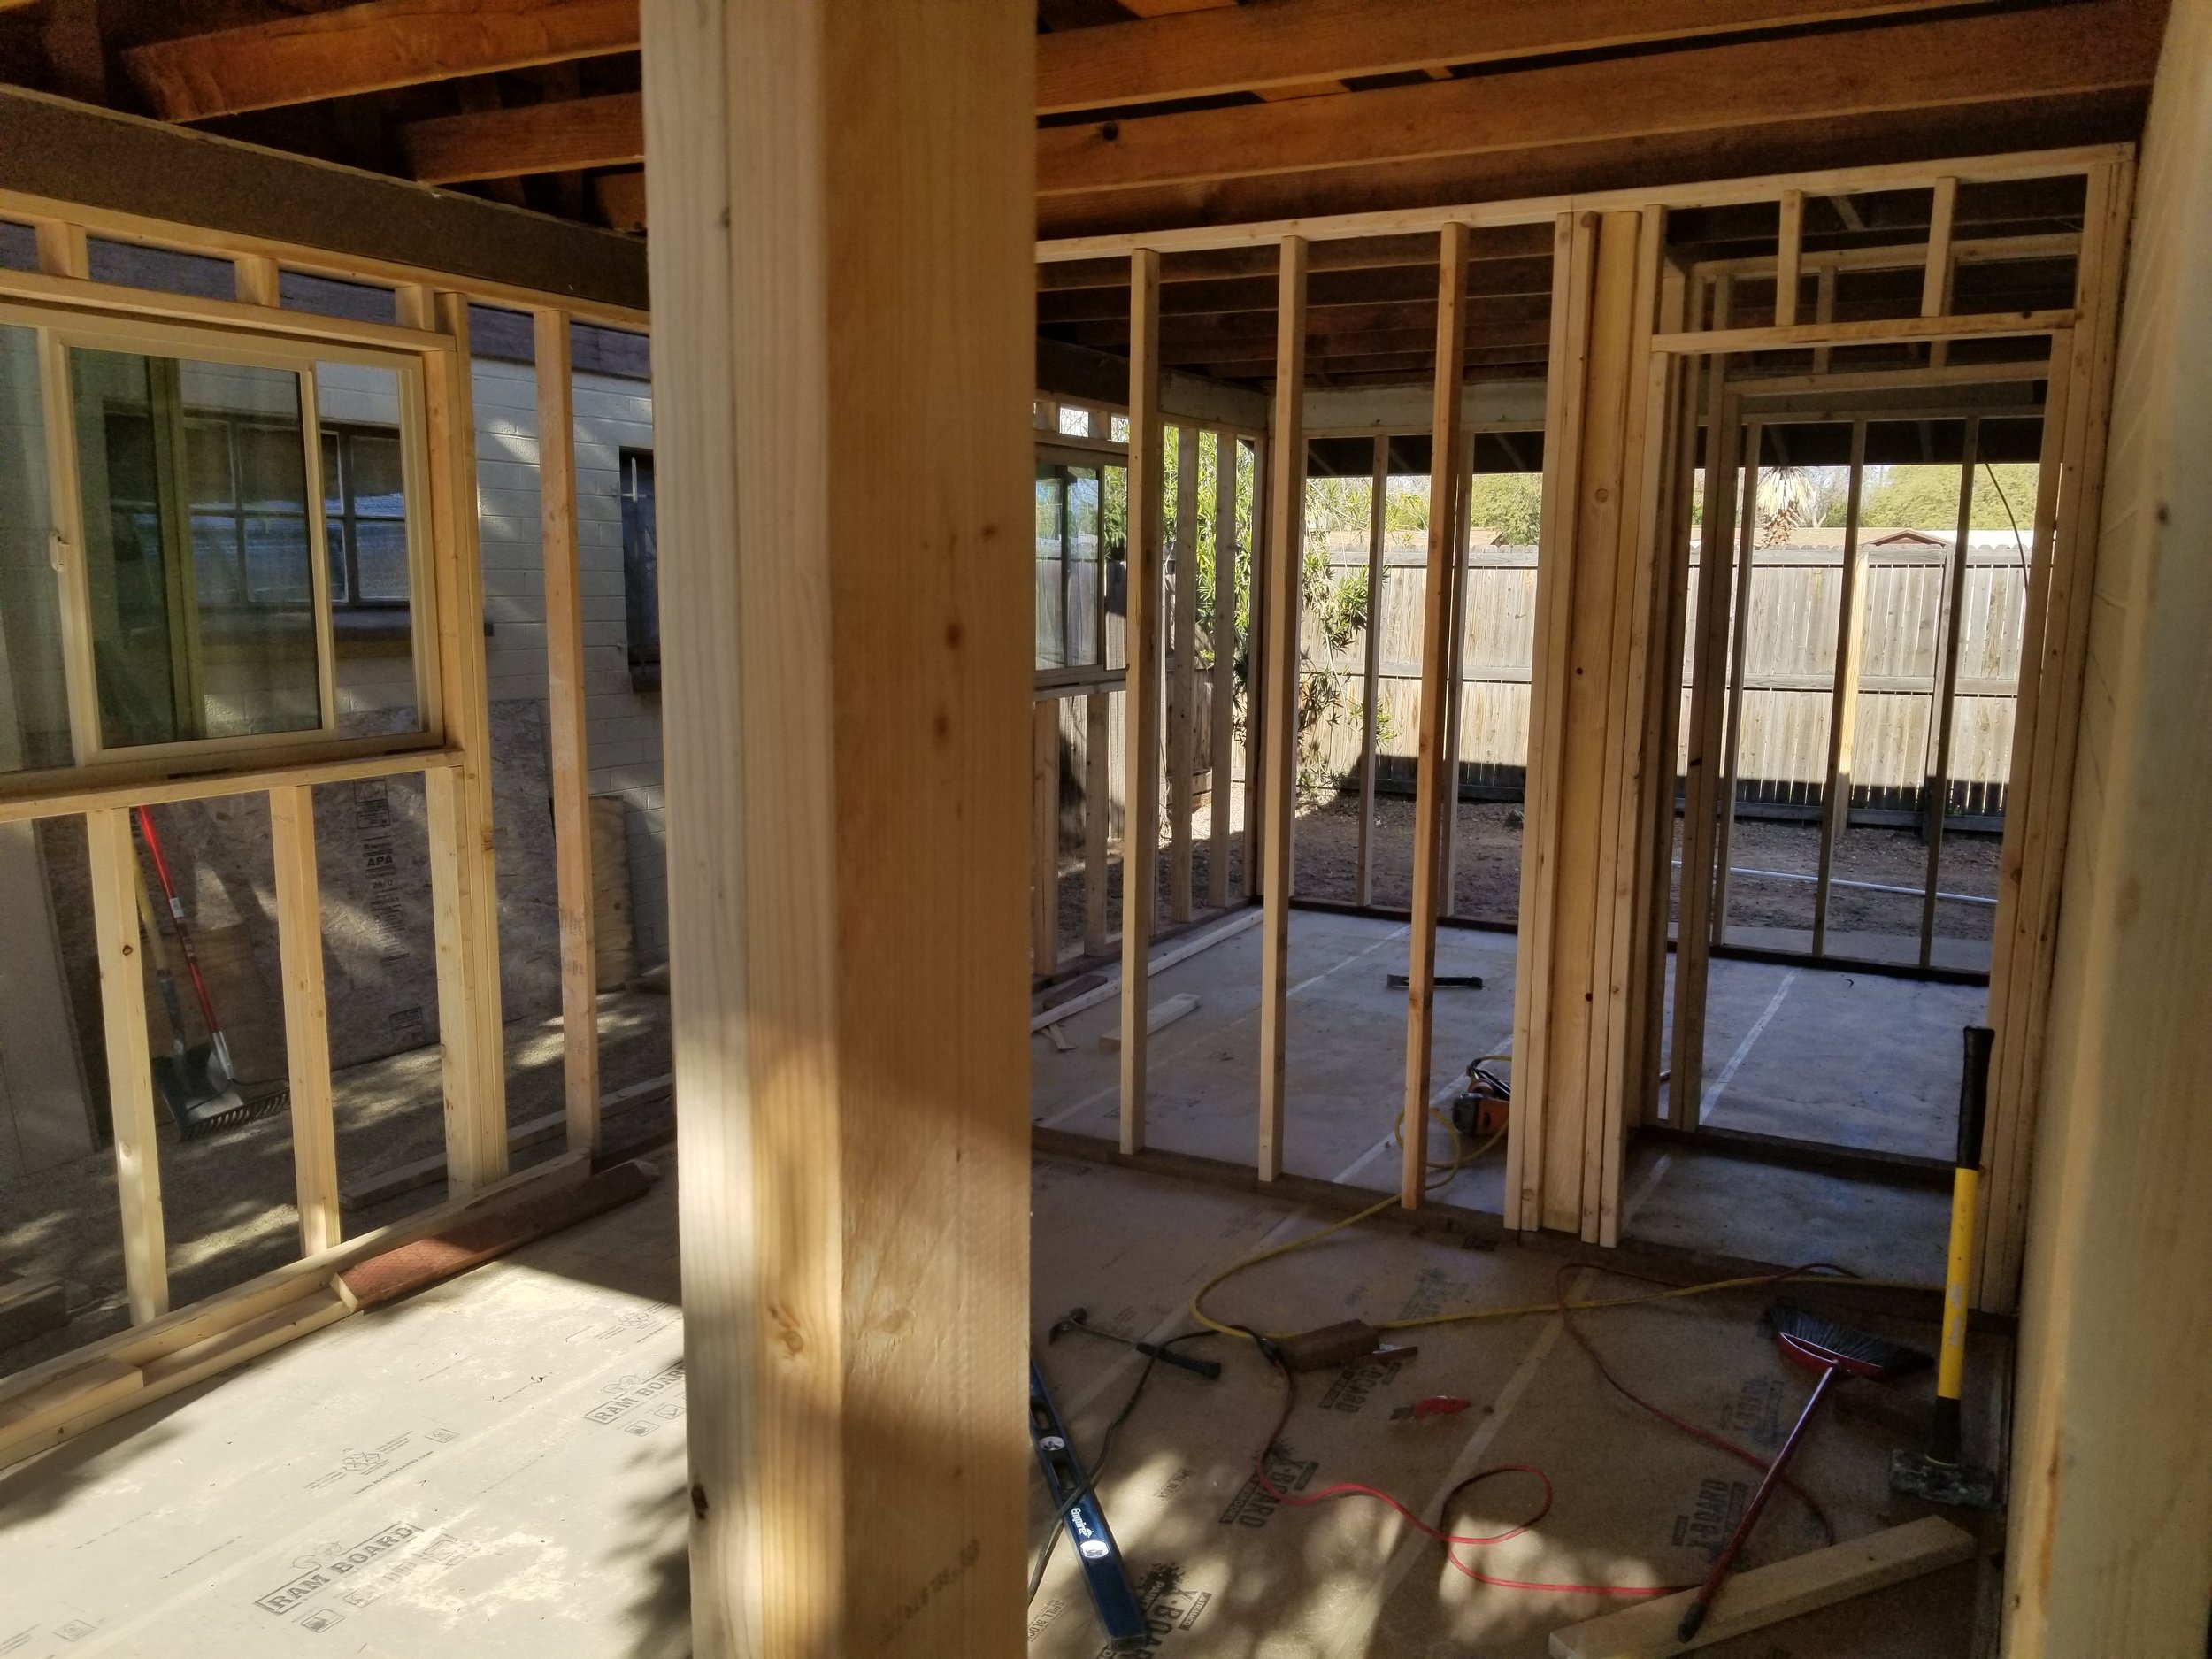 Framing for new bedrooms 2 & 3